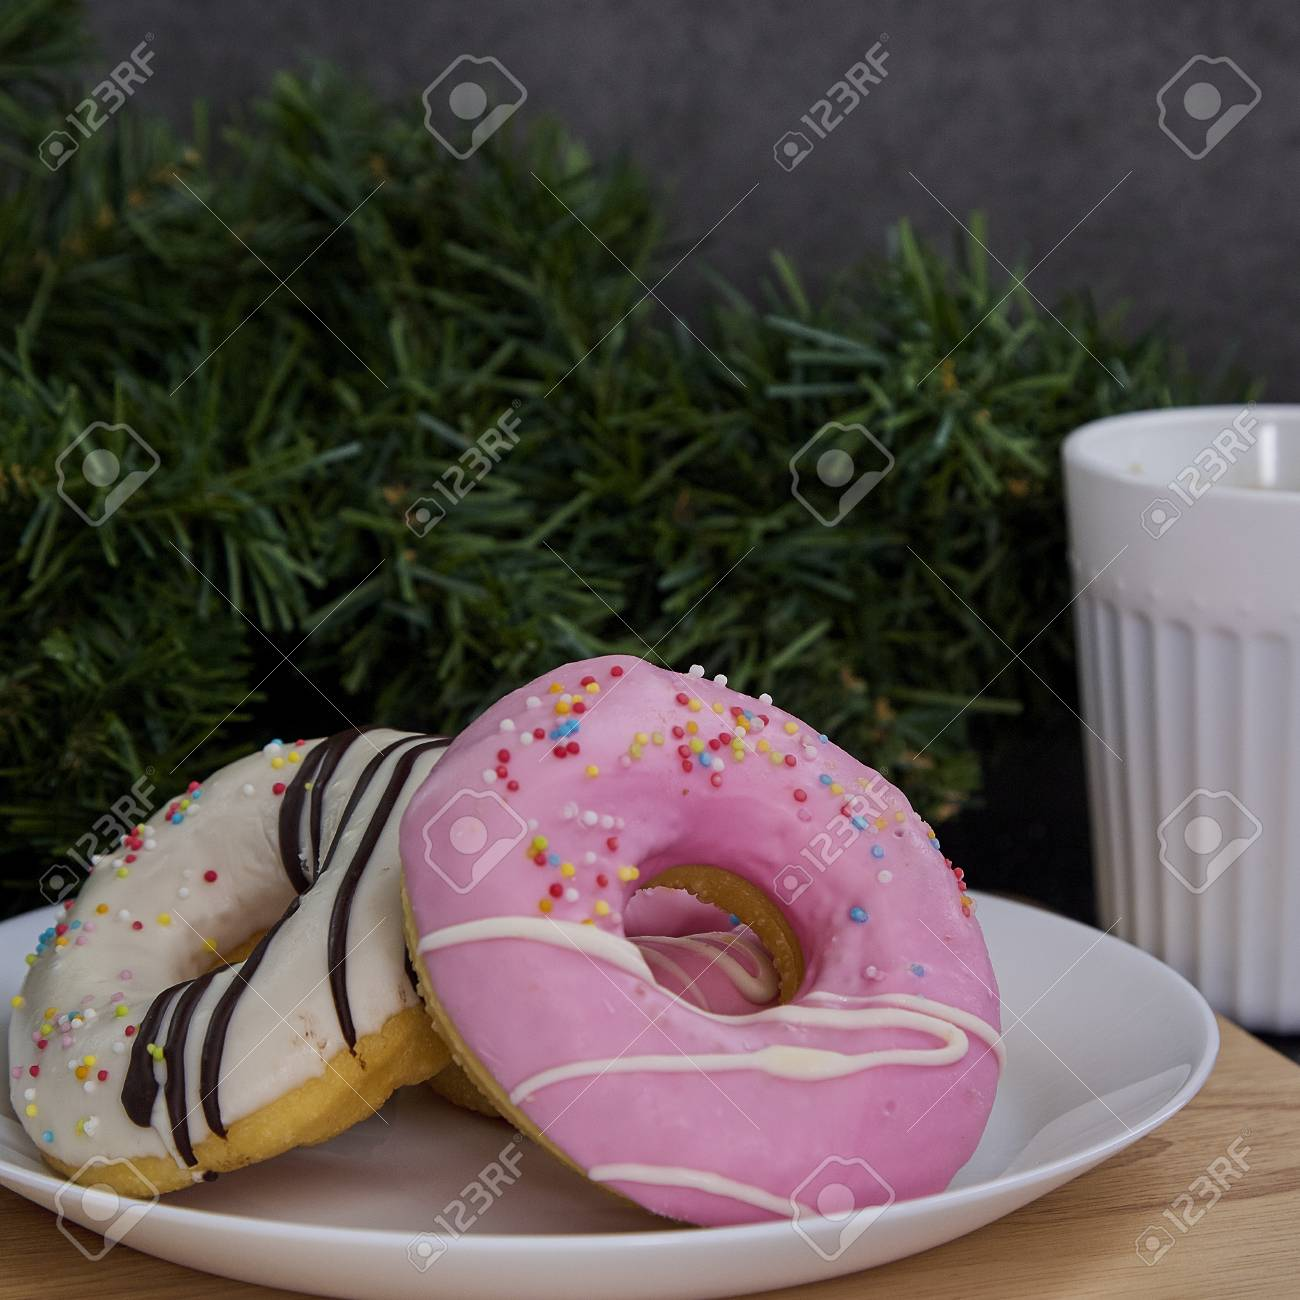 Pink Donuts On Plate Withe Coffee On The Dark Wooden Background Stock Photo Picture And Royalty Free Image Image 113691406